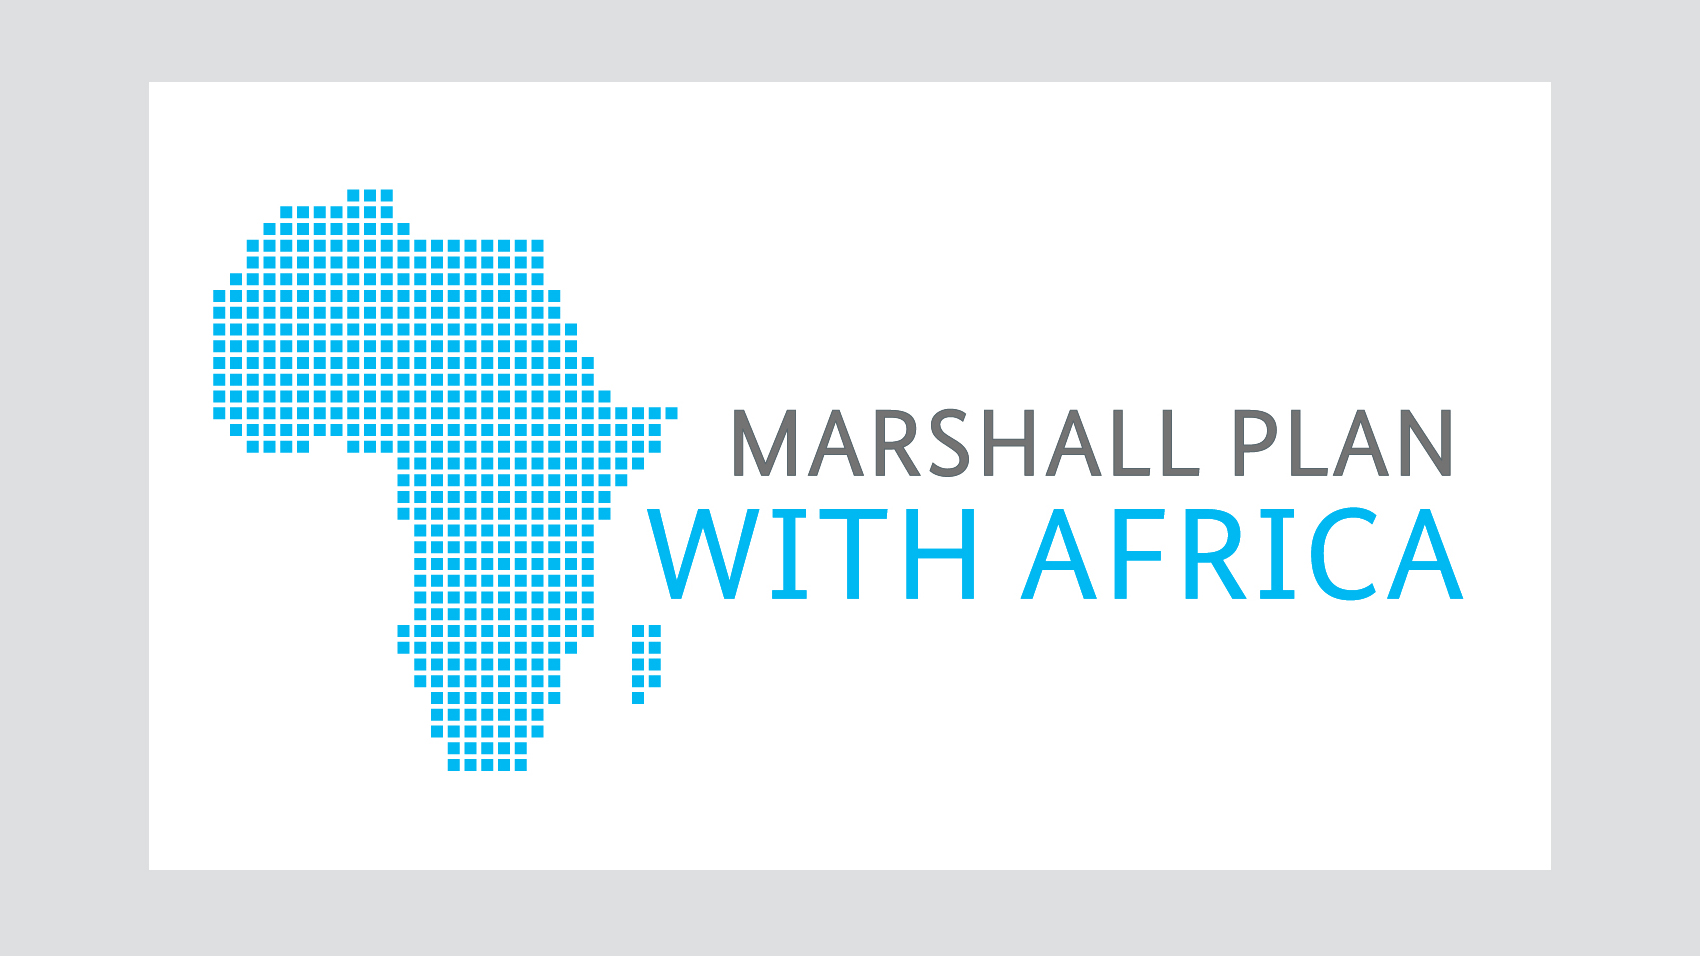 Logo: Marshall Plan with Africa